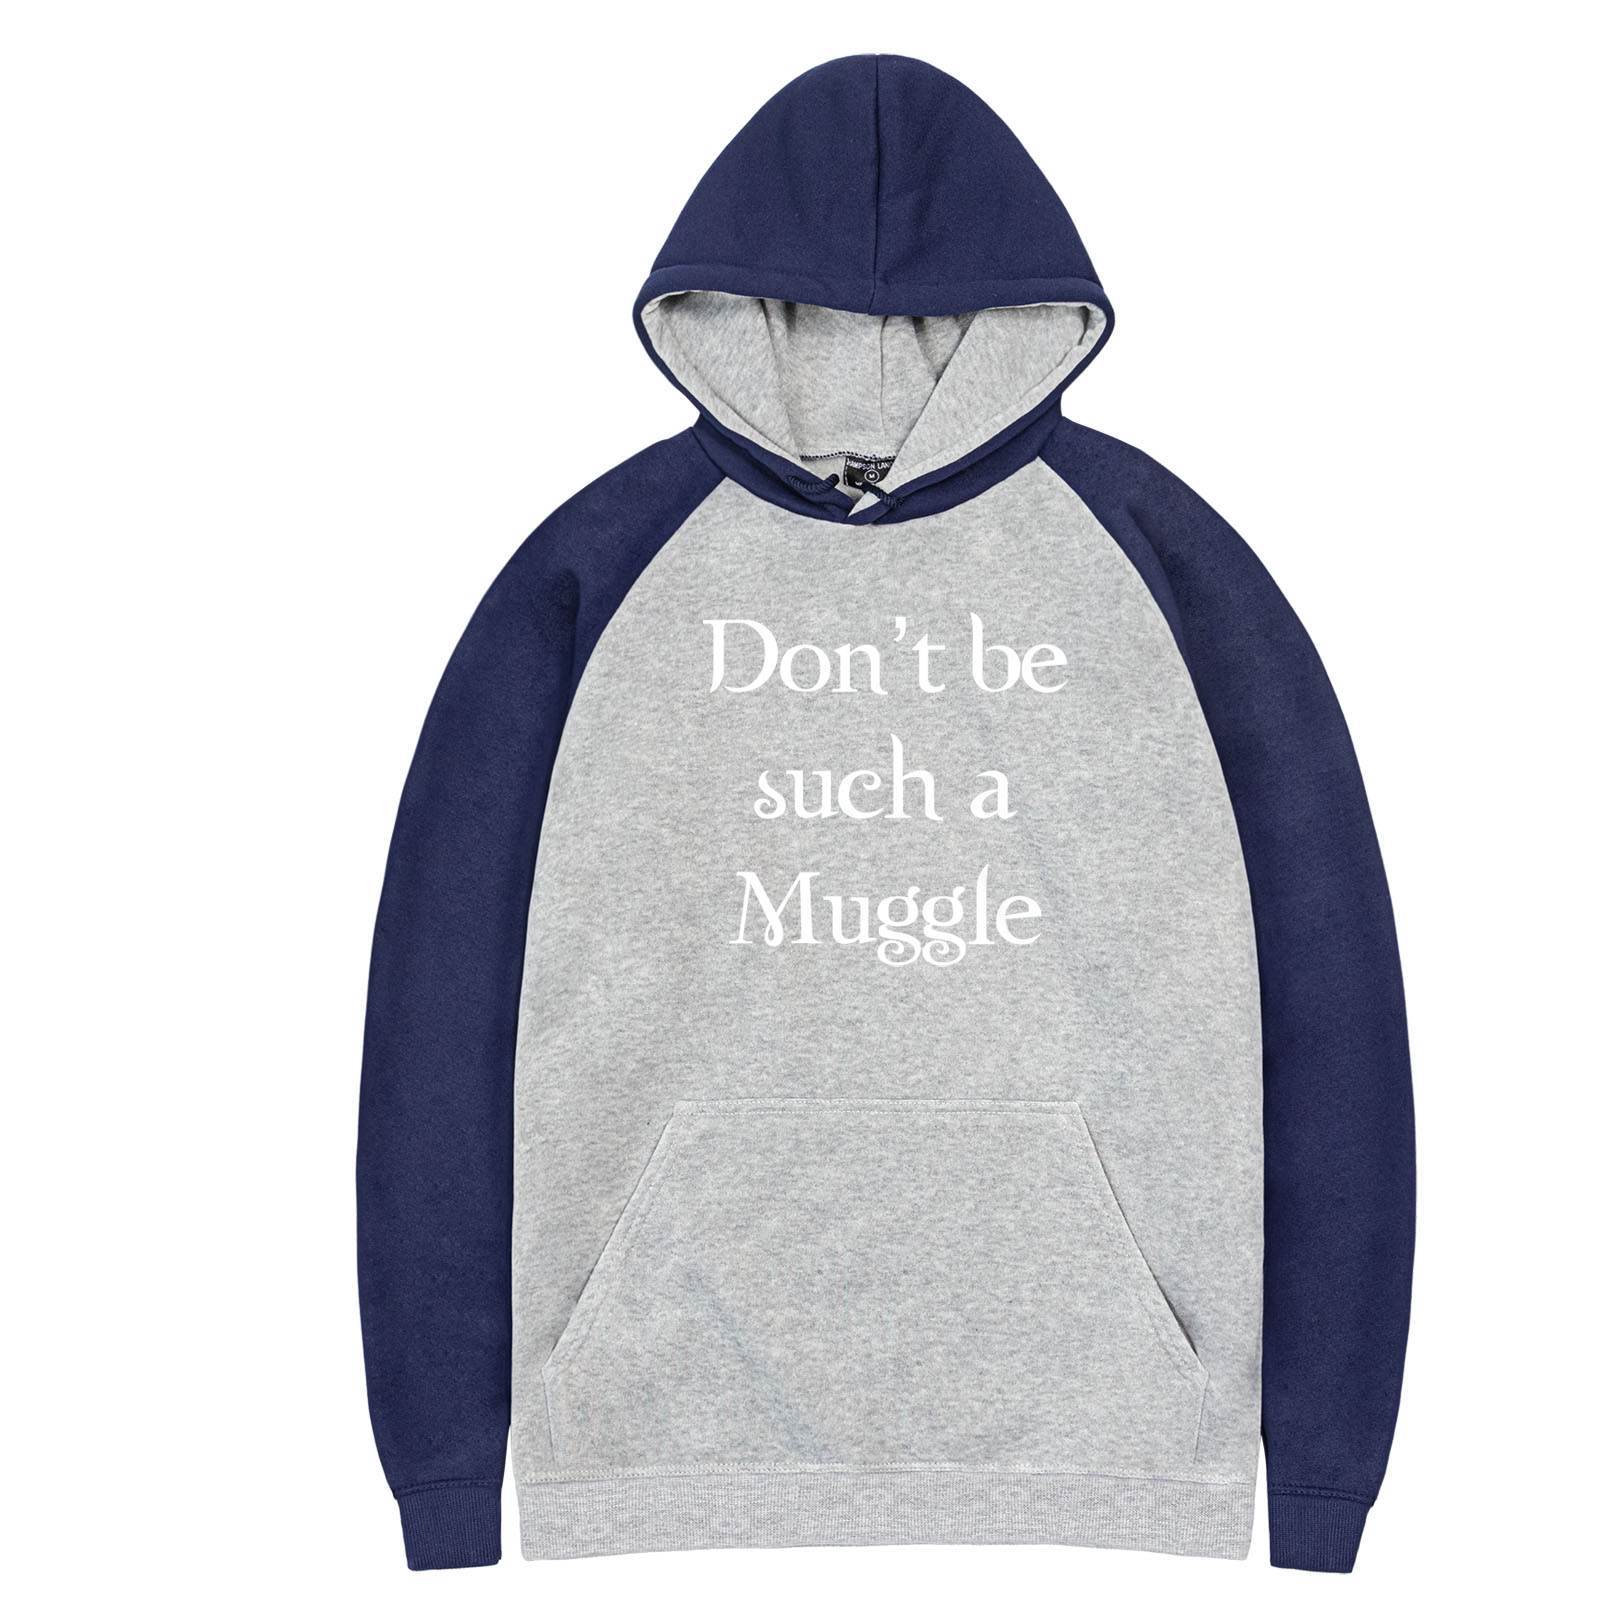 New Arrival 2019 Don't be such a Muggle Funny Fasion Printed Raglan Hoodies Men's Casual Streetwear Spring Autumn Fleece Hooded